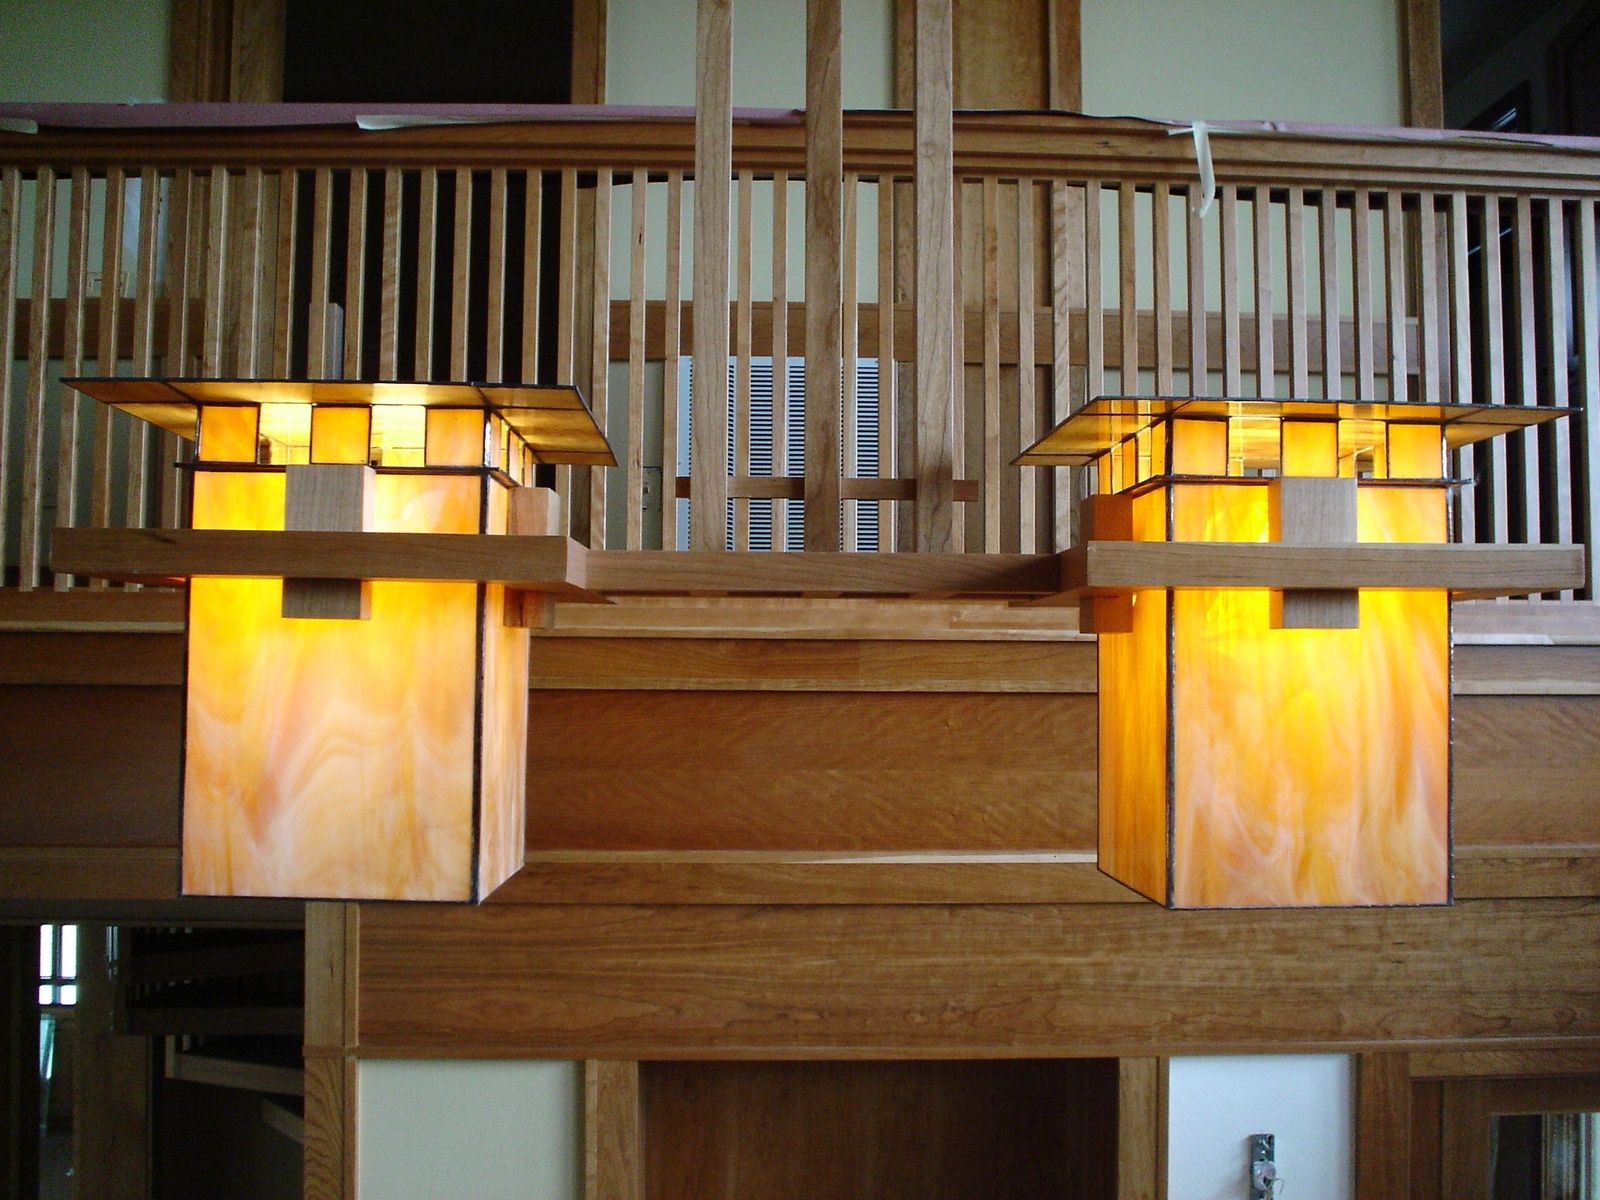 Custom Made Frank Lloyd Wright Inspired Ceiling Light Fixtures By